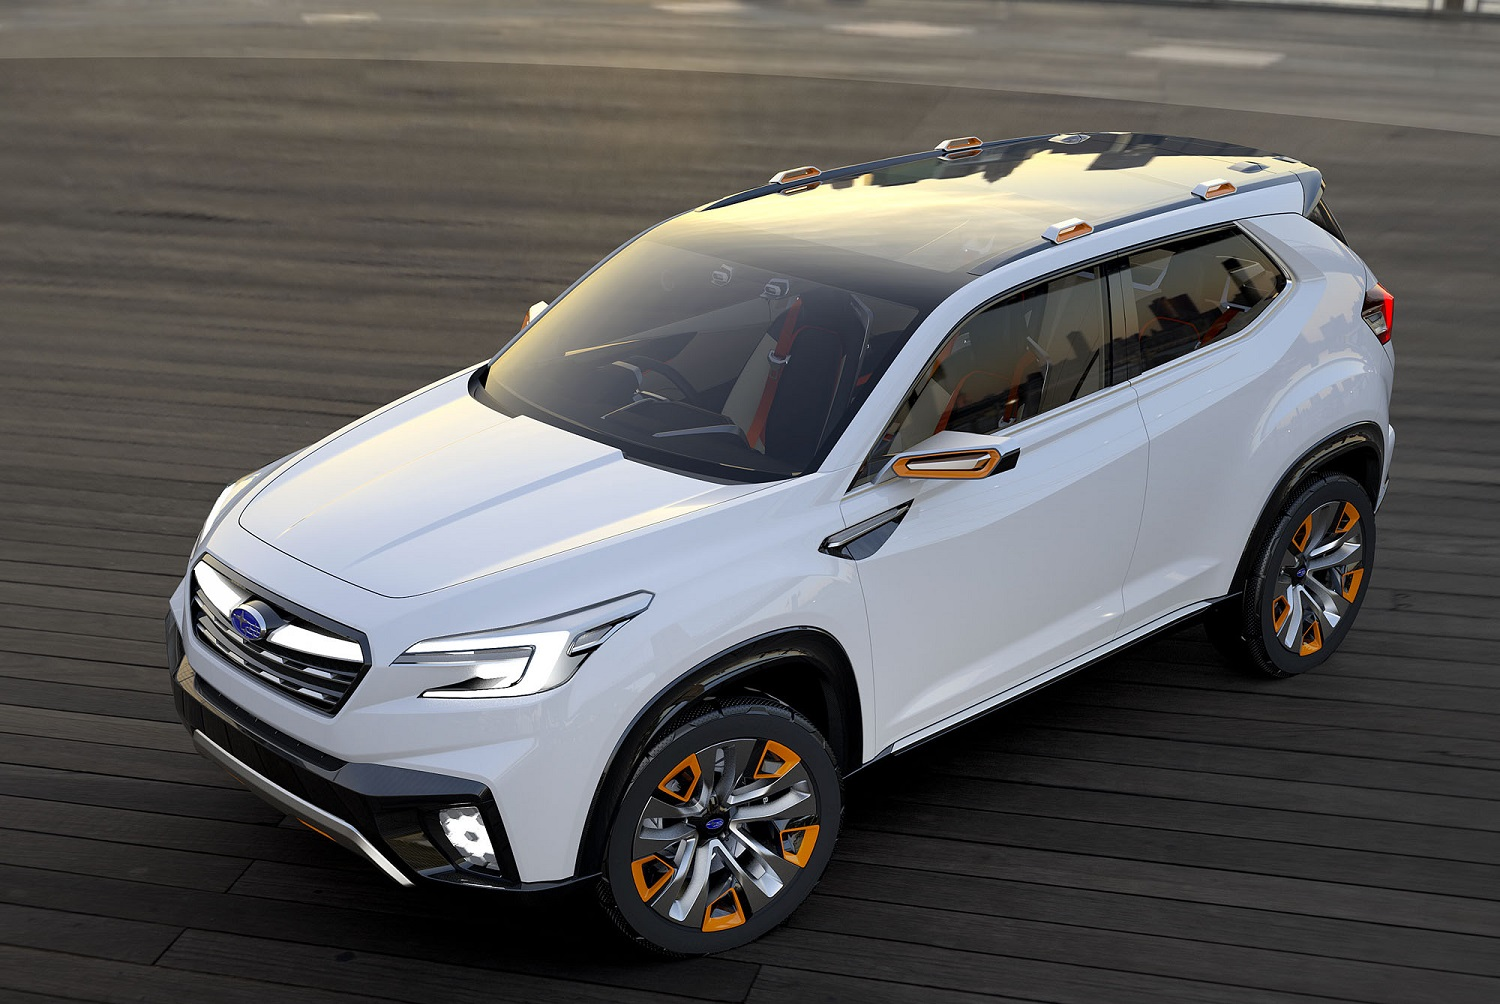 Subaru working on electric crossover for 2021 launch?